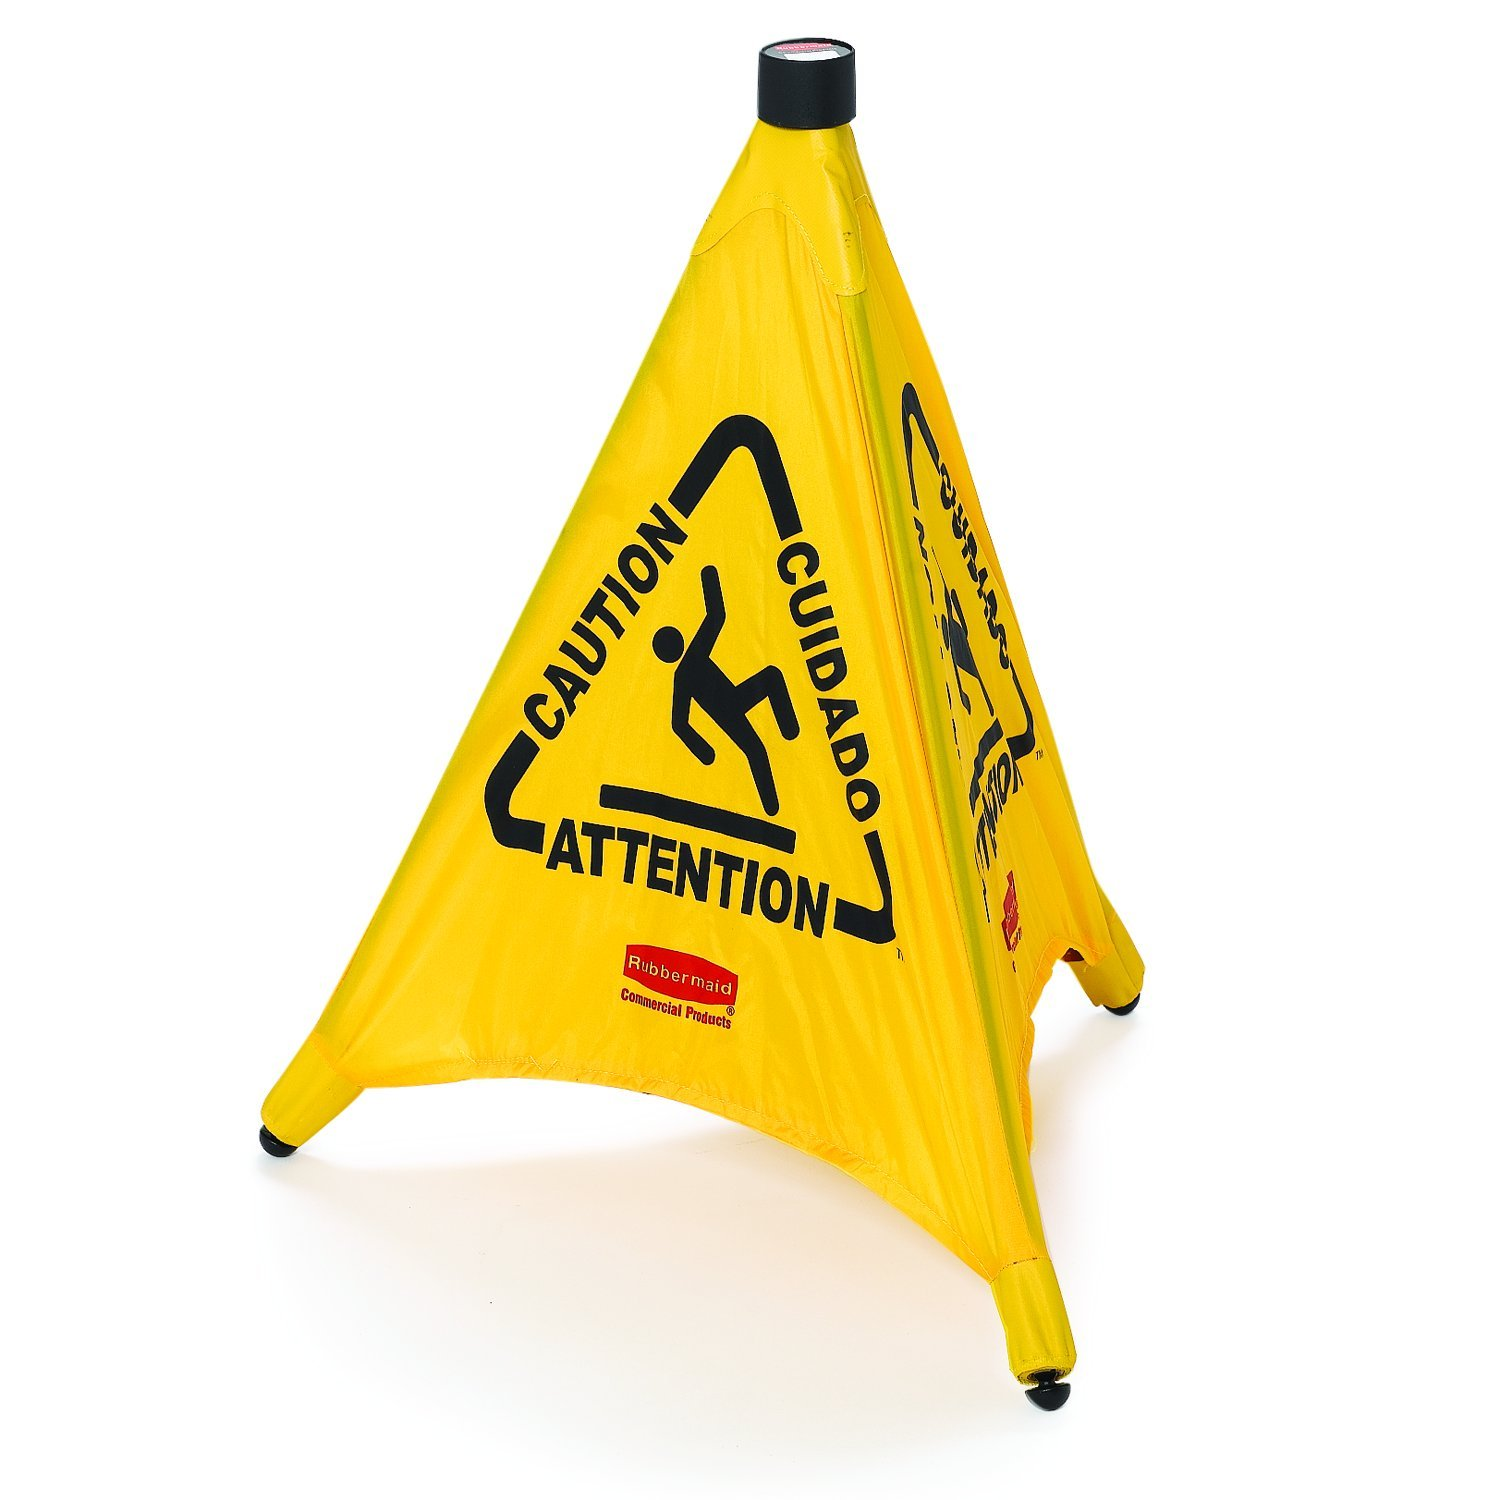 Rubbermaid Commercial Yellow Pop-Up Safety Cone with Multi-Lingual Caution Imprint and Wet Floor Symbol (FG9S0000YEL) 172649